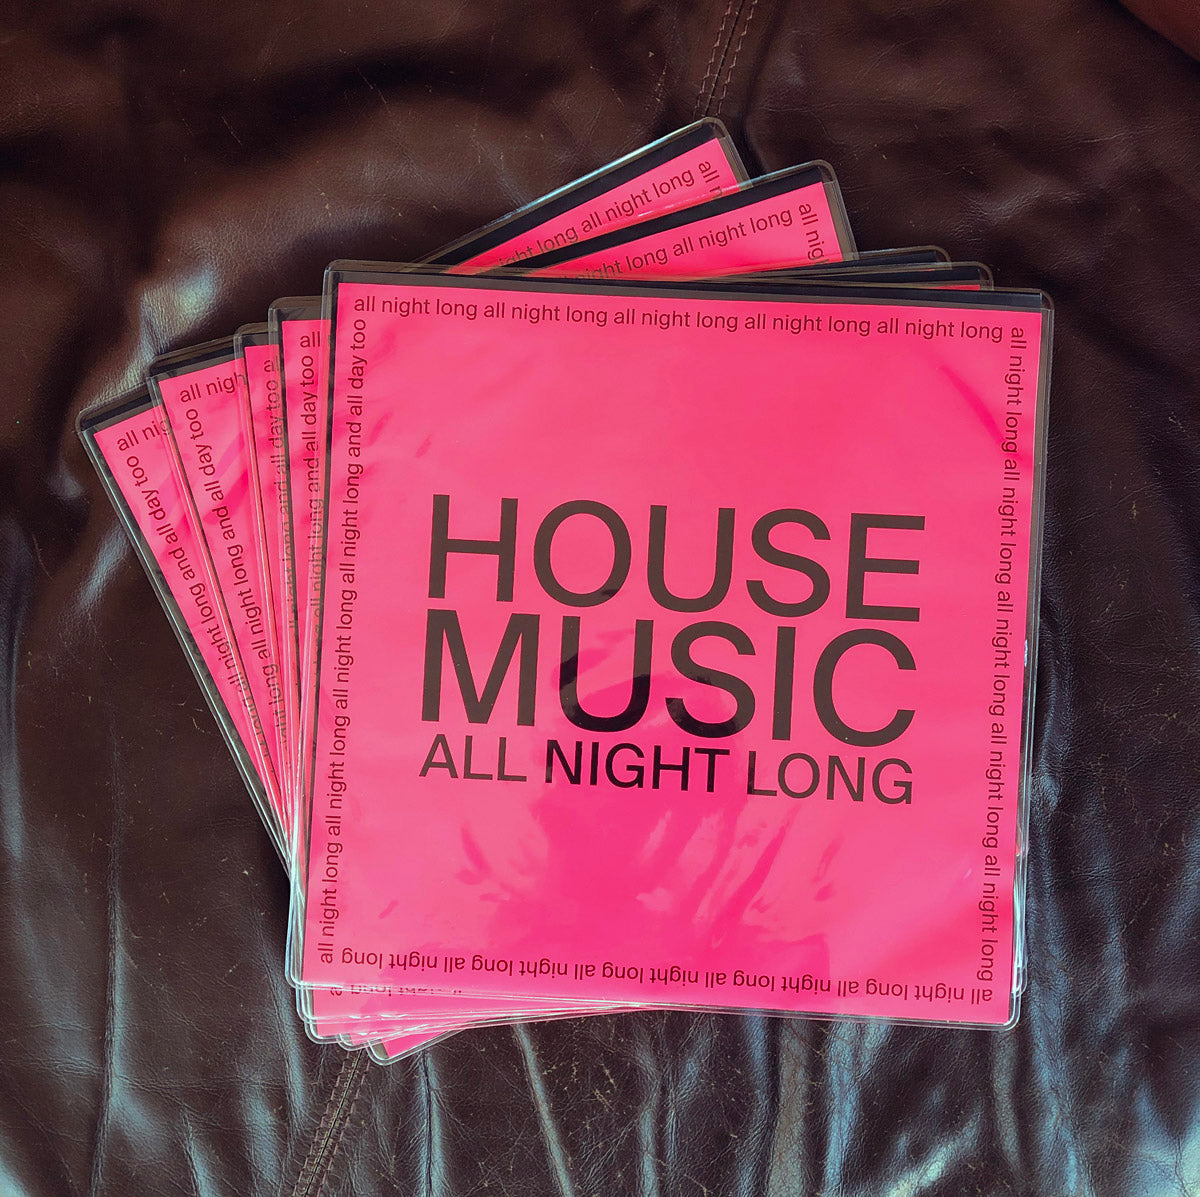 JARV IS... - House Music All Night Long